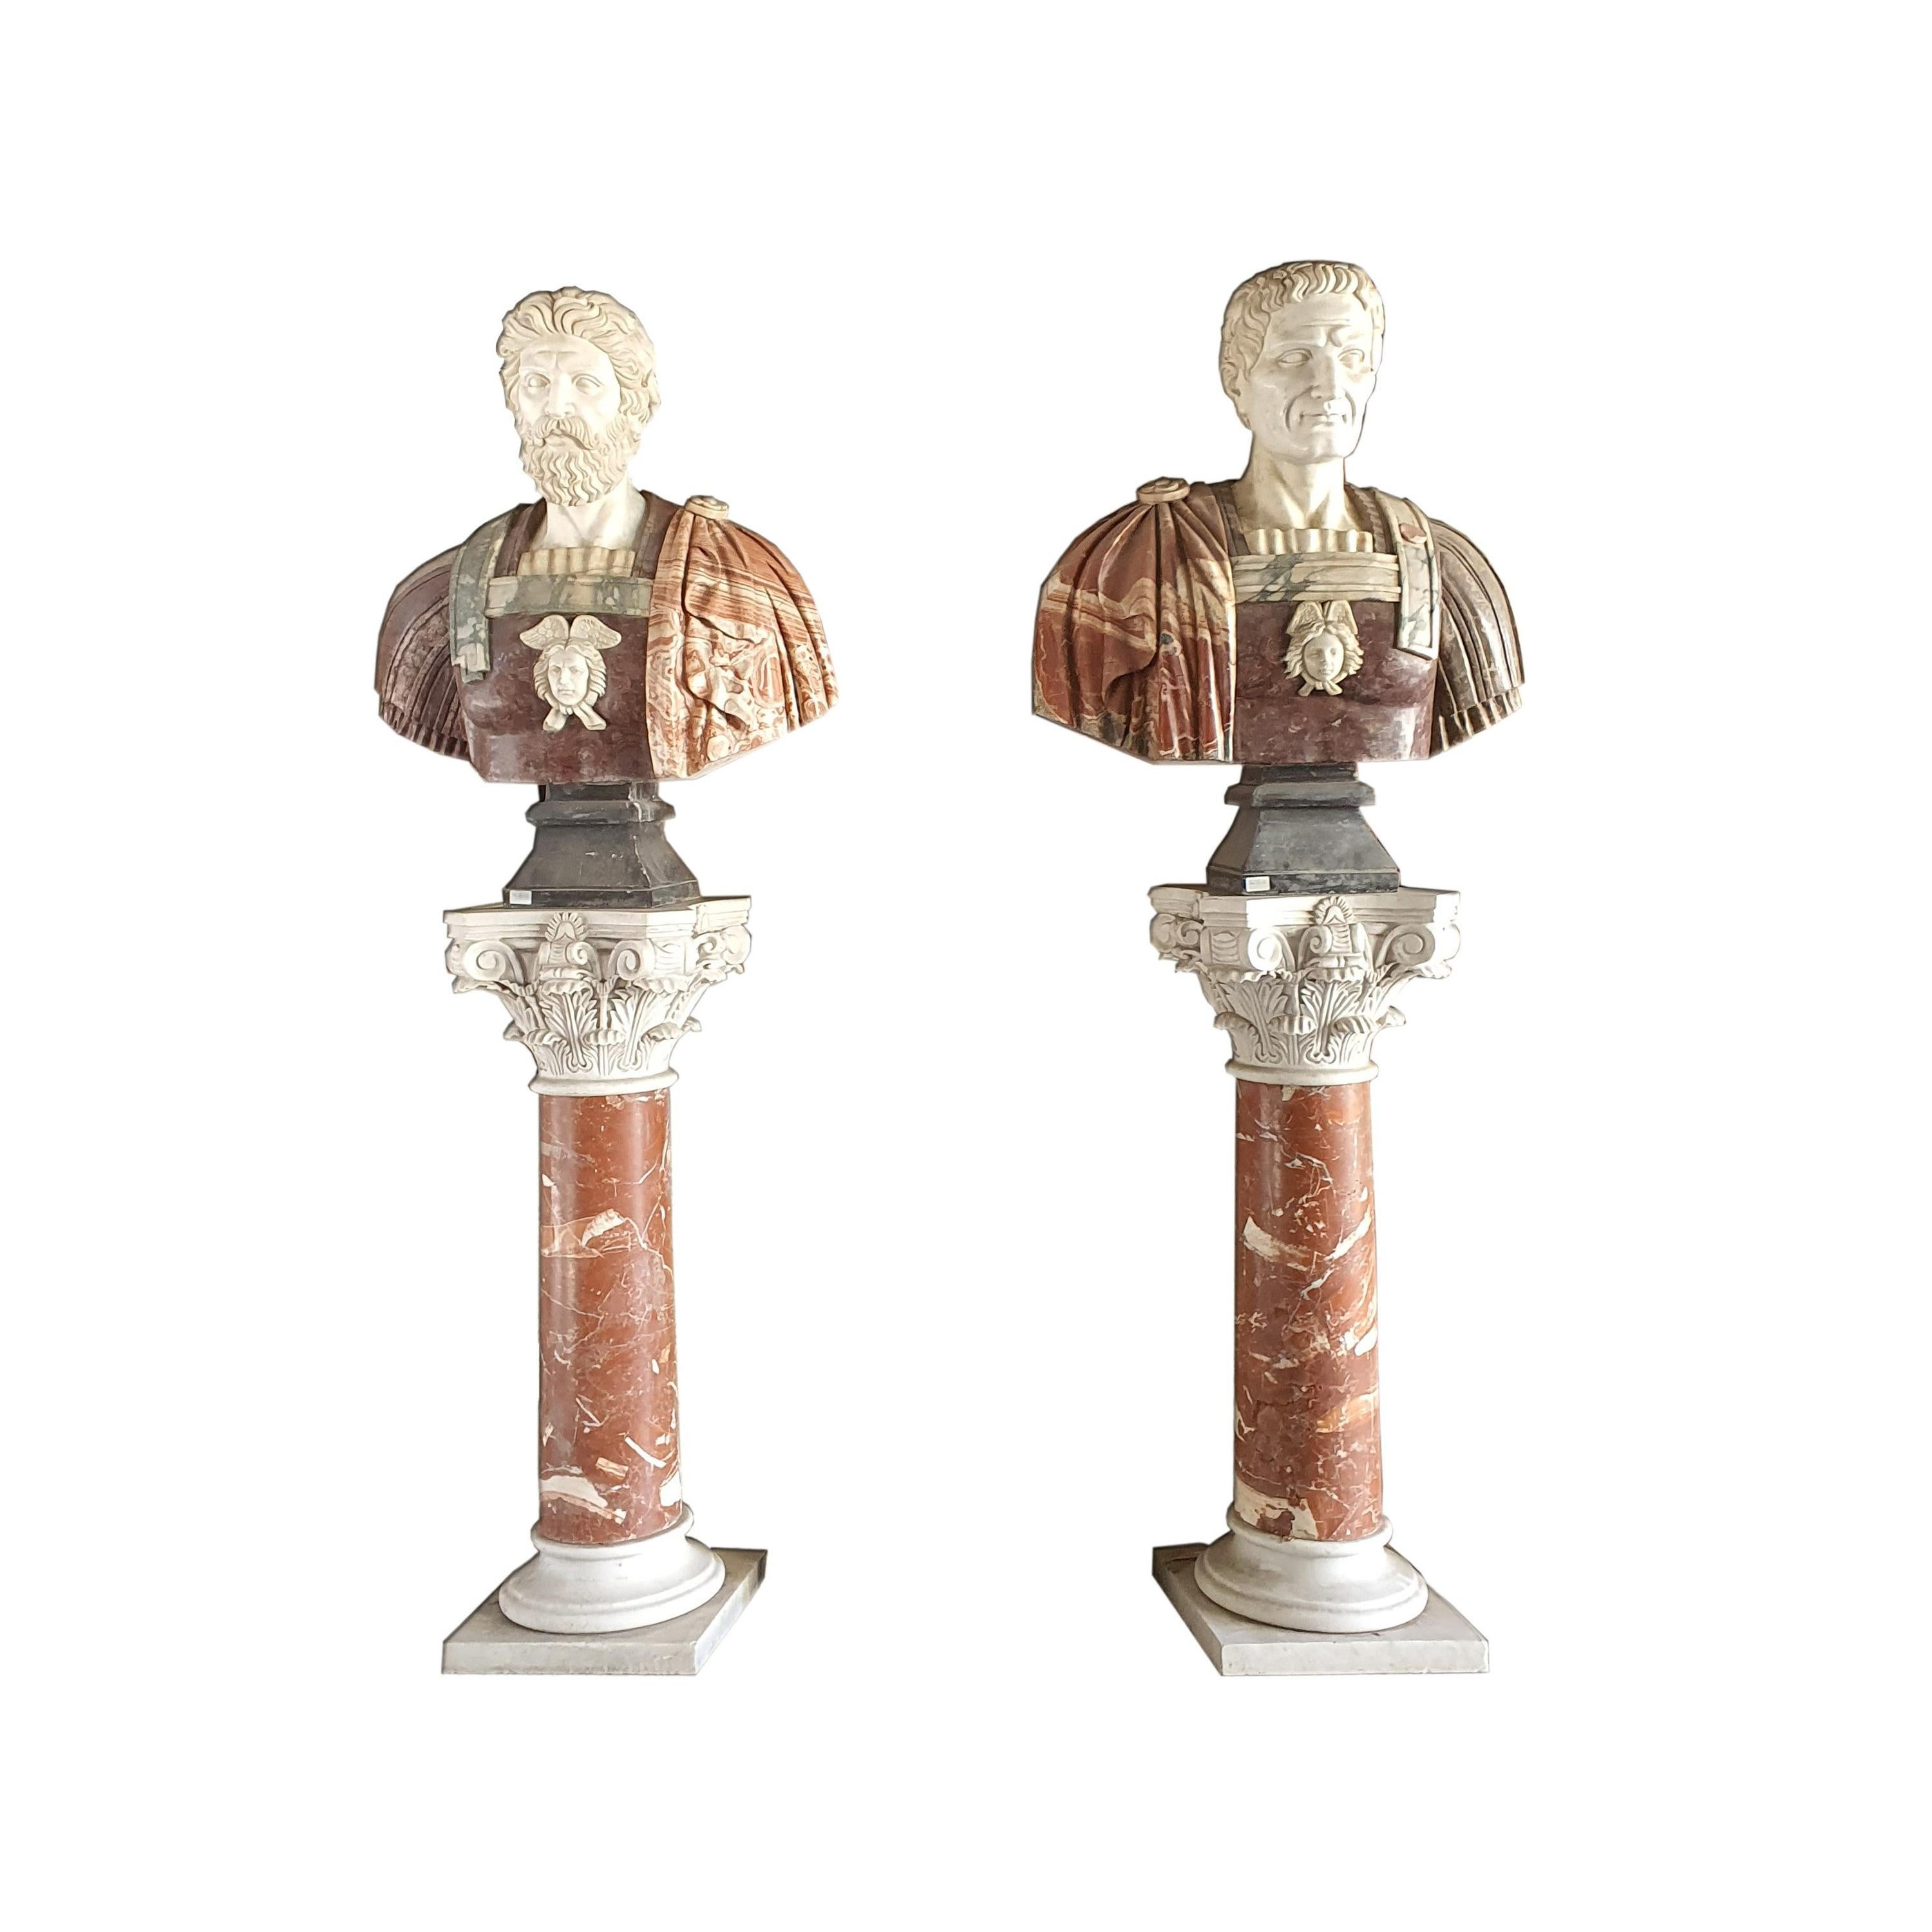 19th Century Pair of Marble Busts with Marble Pedestals Statuary Marble Breccia